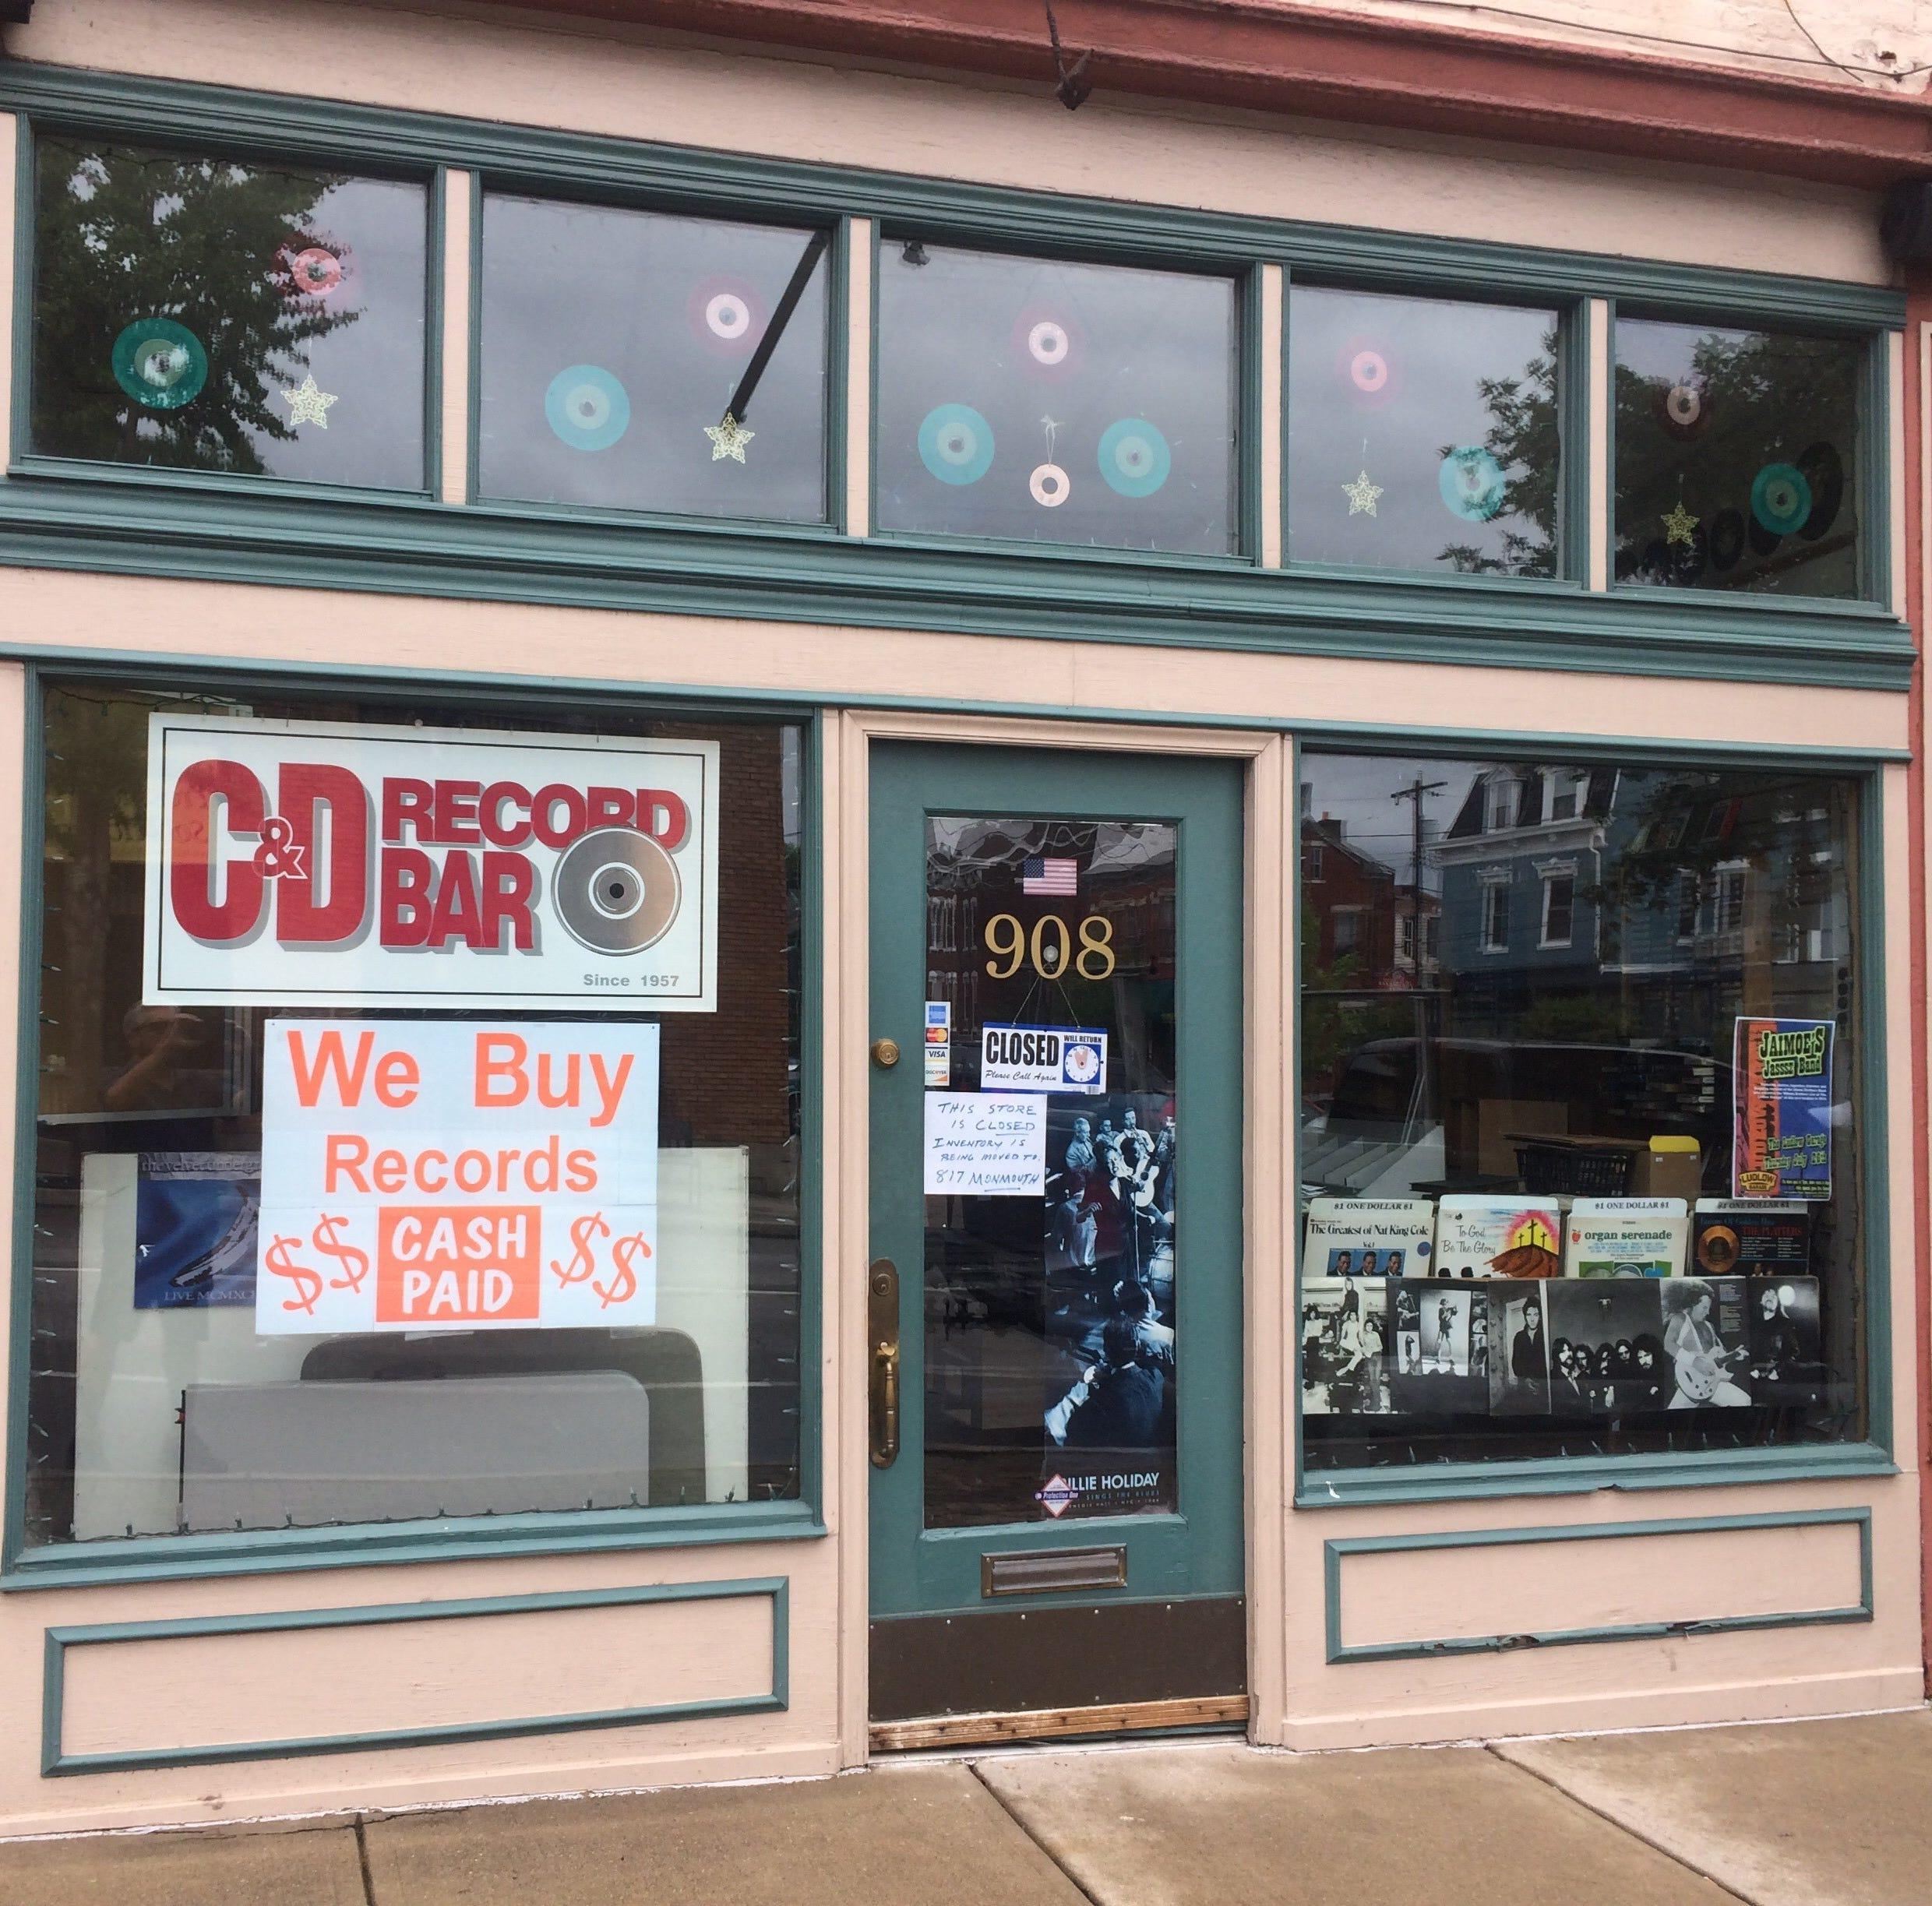 C&D Record Bar: Oldest record shop in town has closed